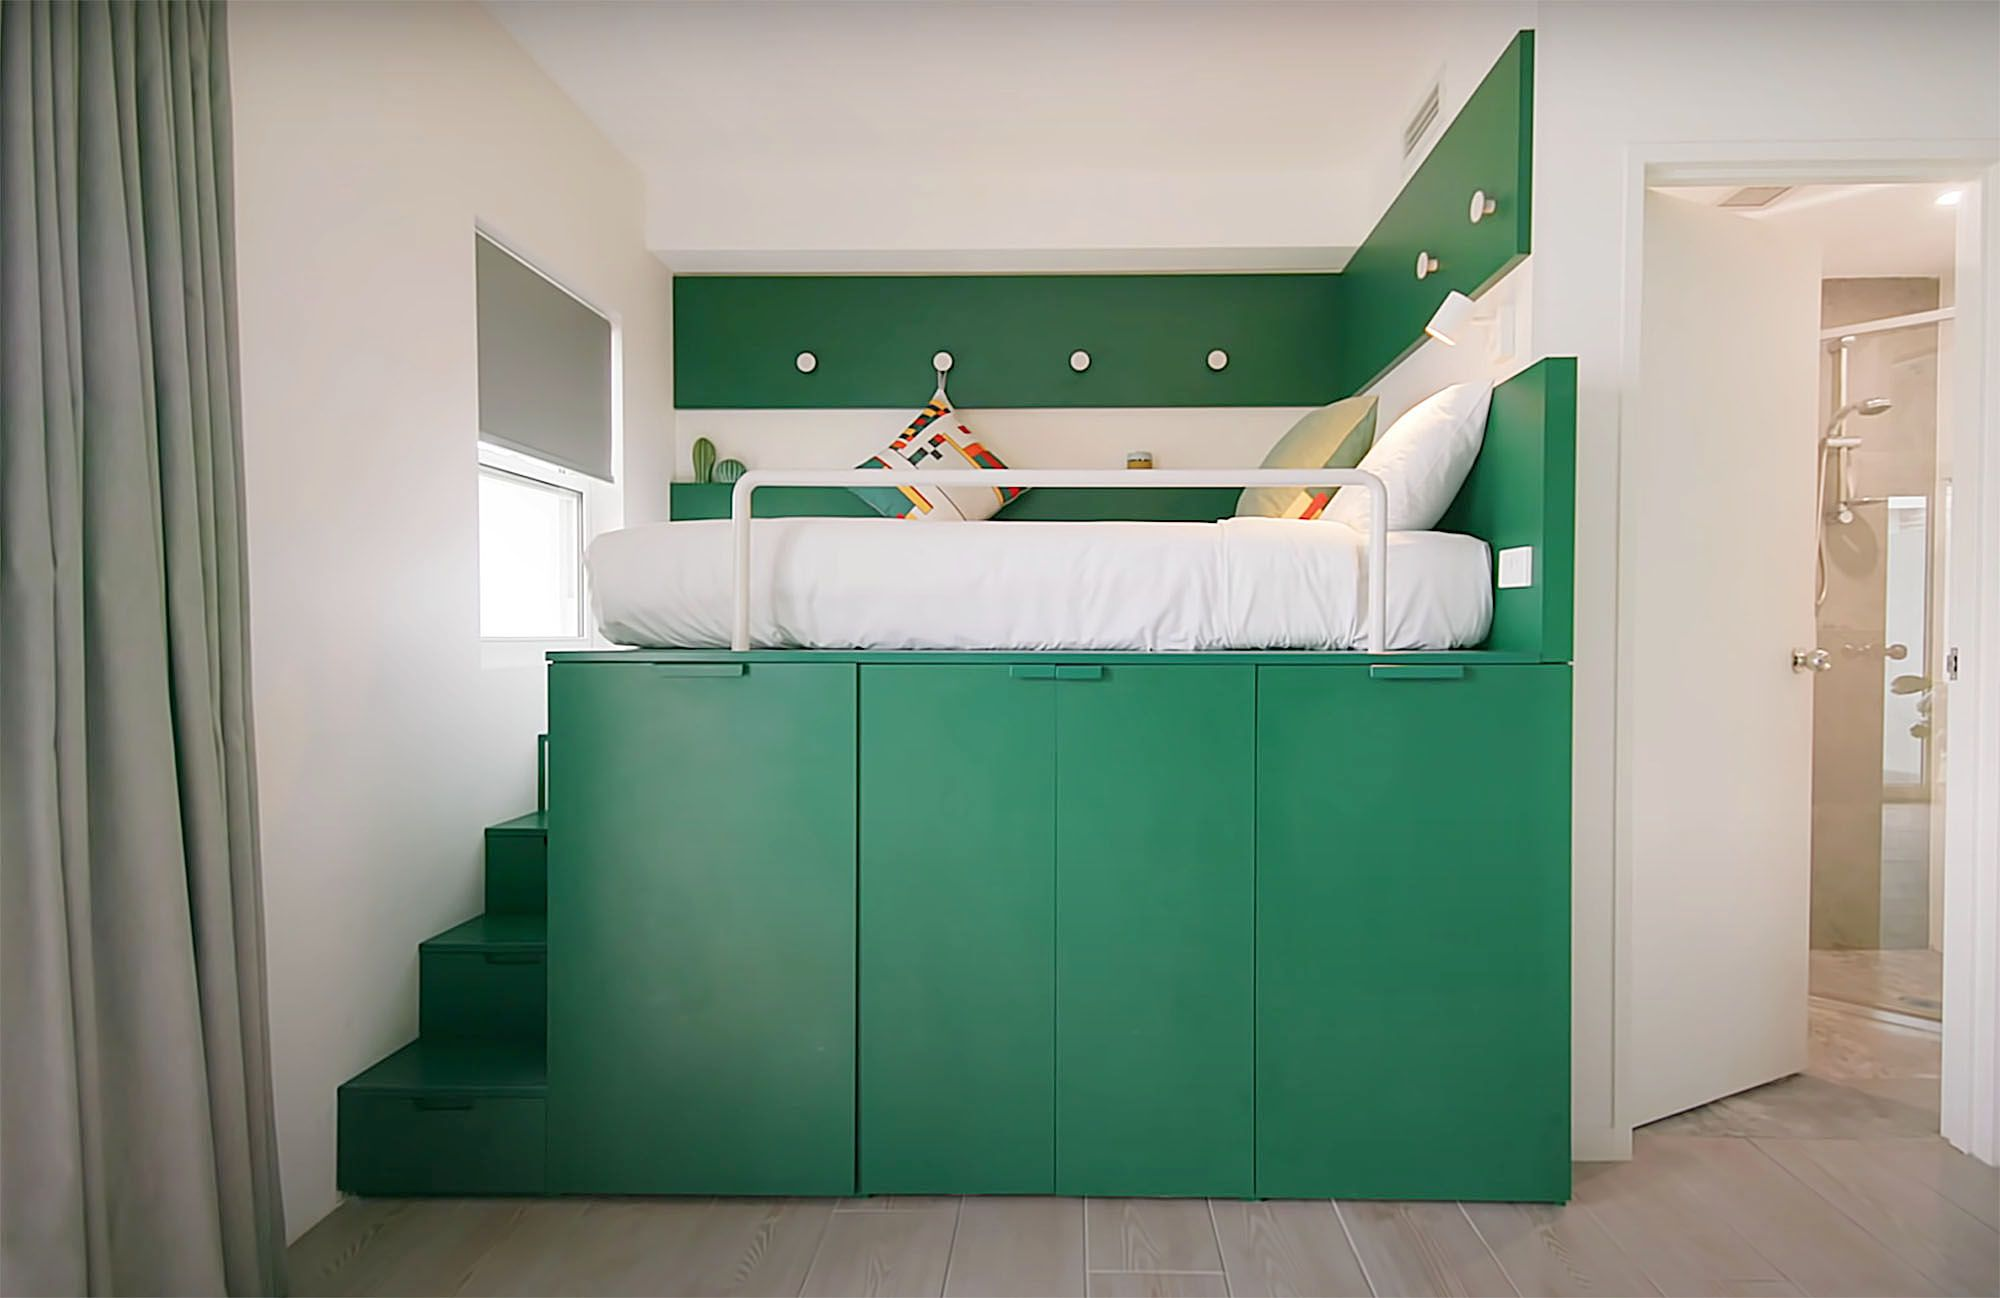 UKO stanmore coliving micro-apartment Mostaghim Associates bed